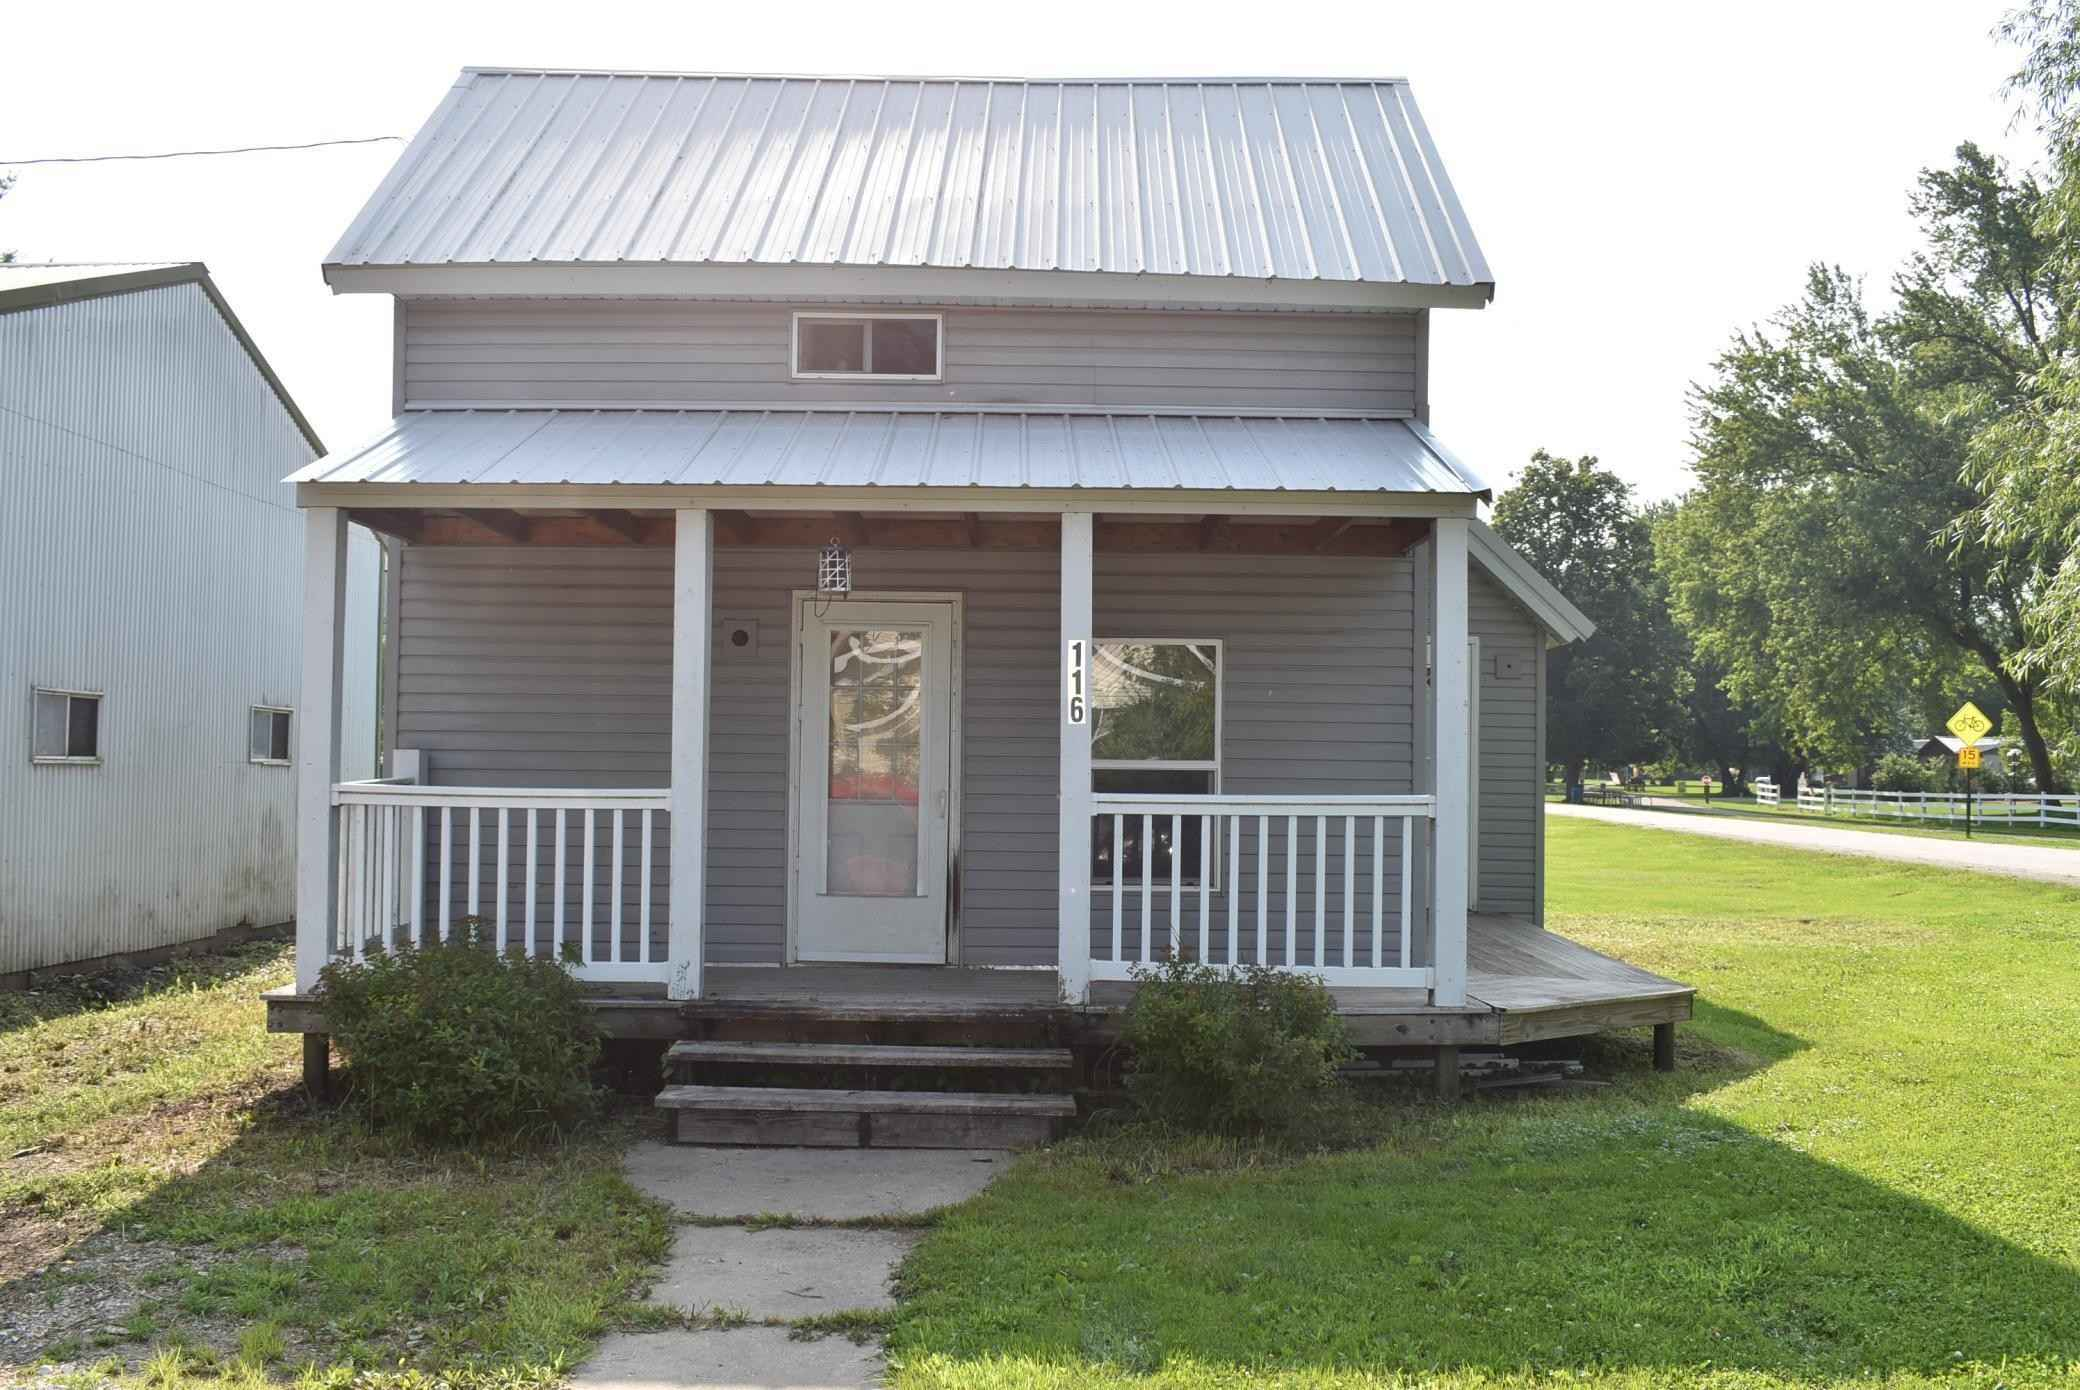 View 12 photos of this 1 bed, 1 bath, and 840 sqft. single_family home located at 116 1st Ave, Whalan, Minnesota 55949 is Pending for $49,900.